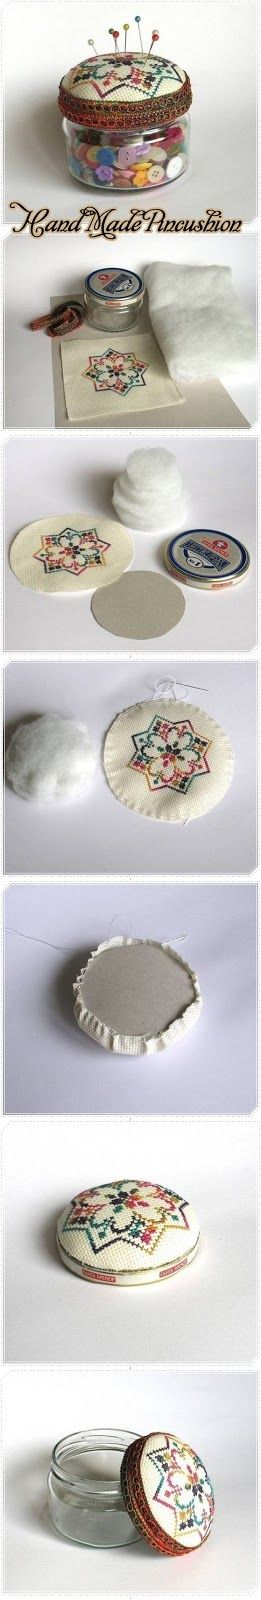 The Best Crafts from Pinterest: Hand Made Pincushion